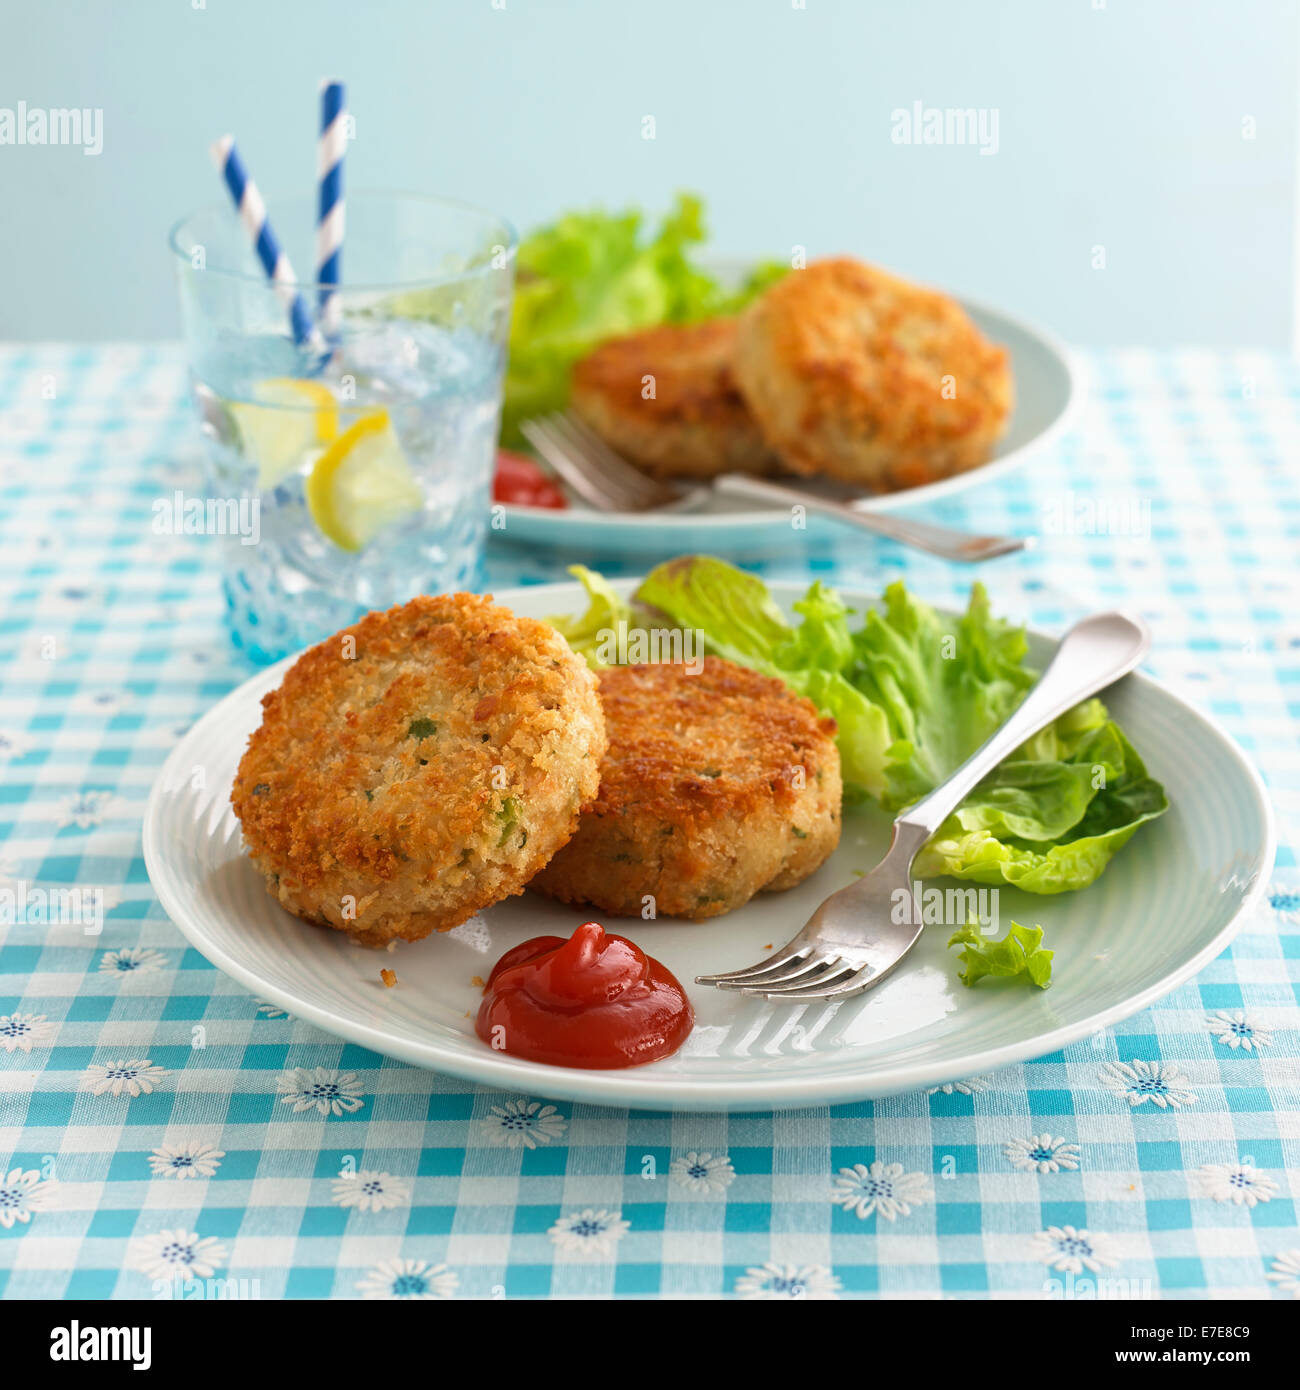 fishcakes on a plate - Stock Image